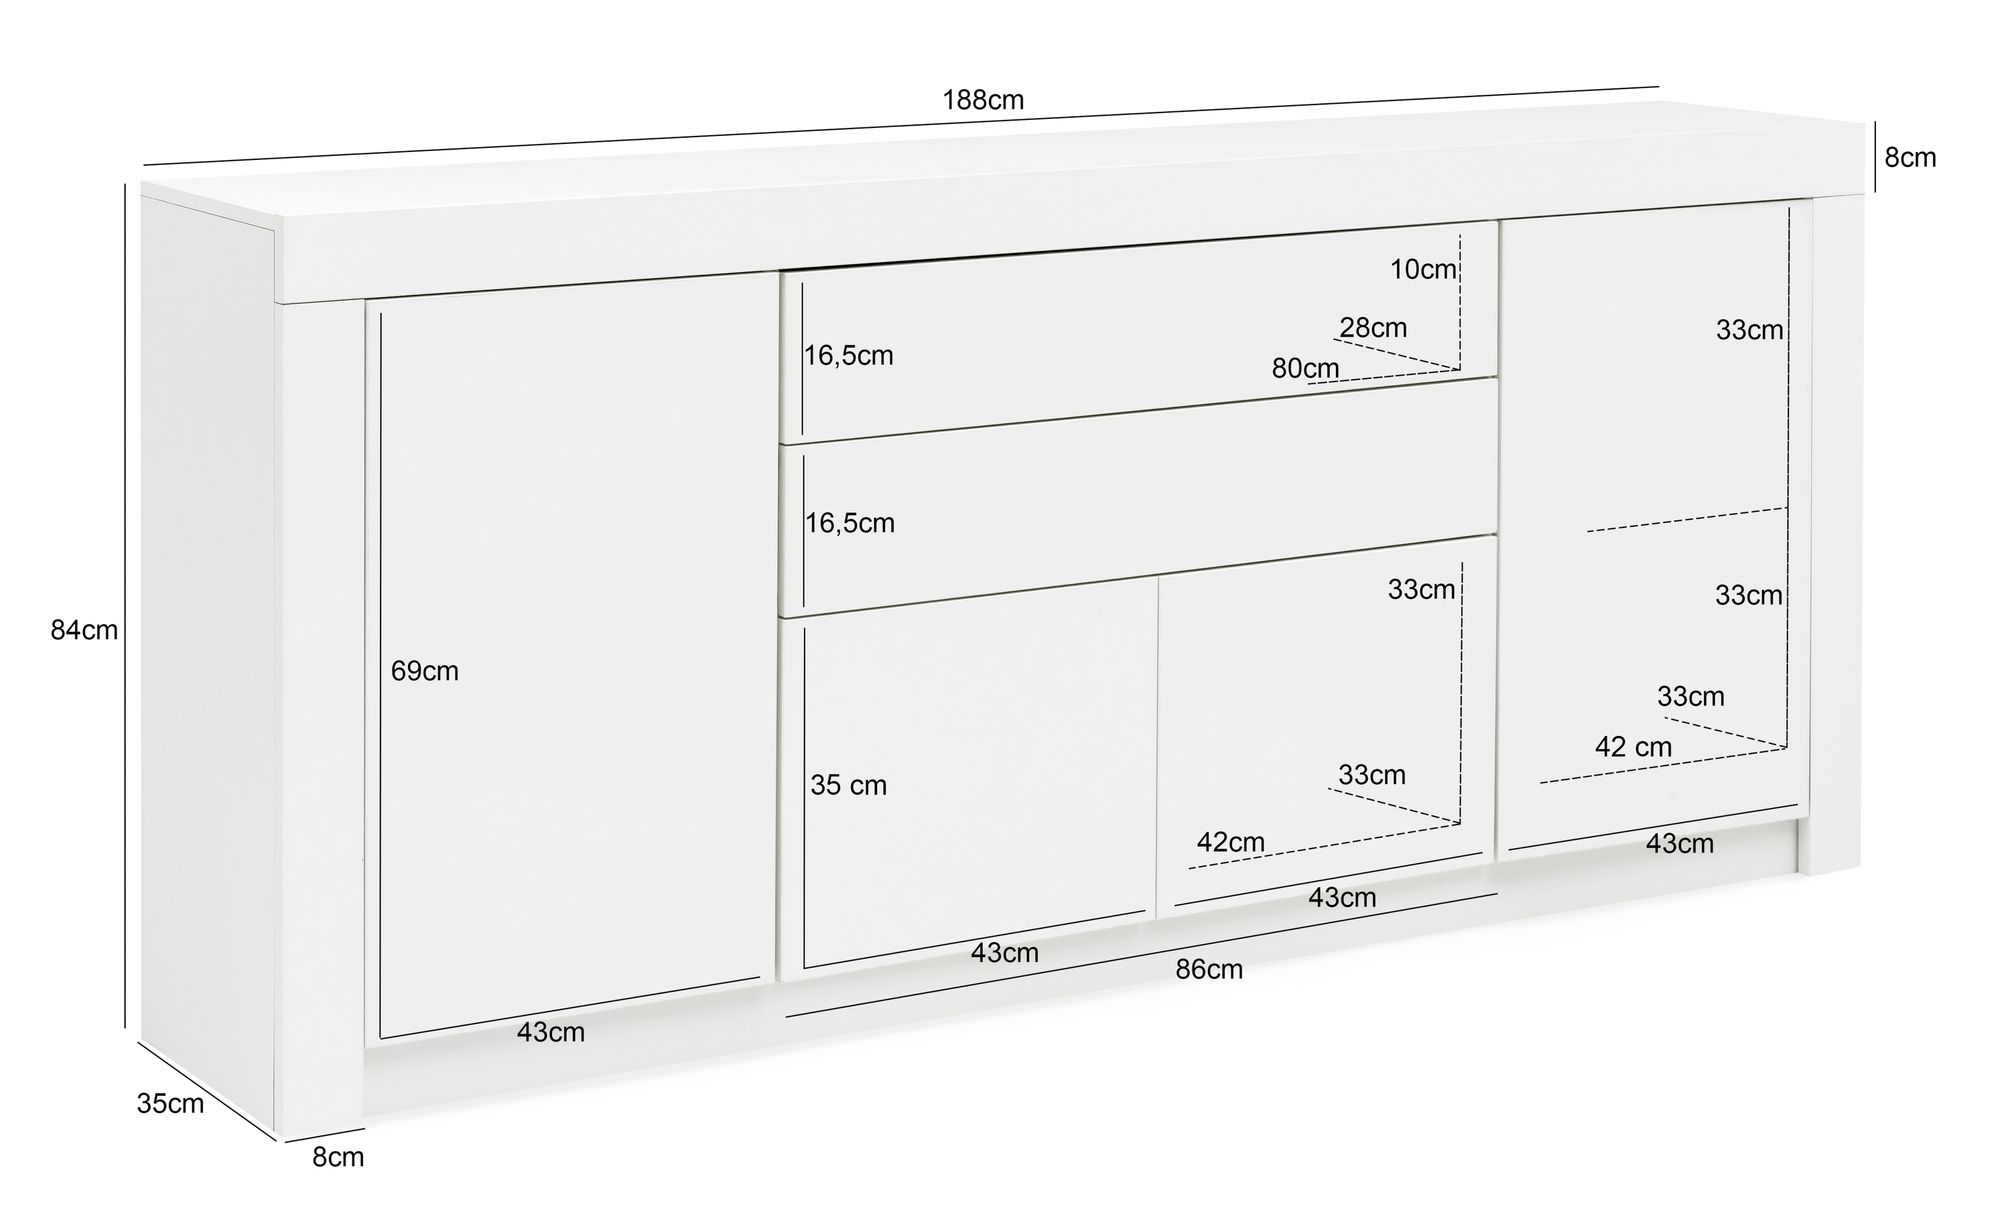 Kommode 35 Tief Weiss. Top Kommode Wei Xx Bad Hemnes